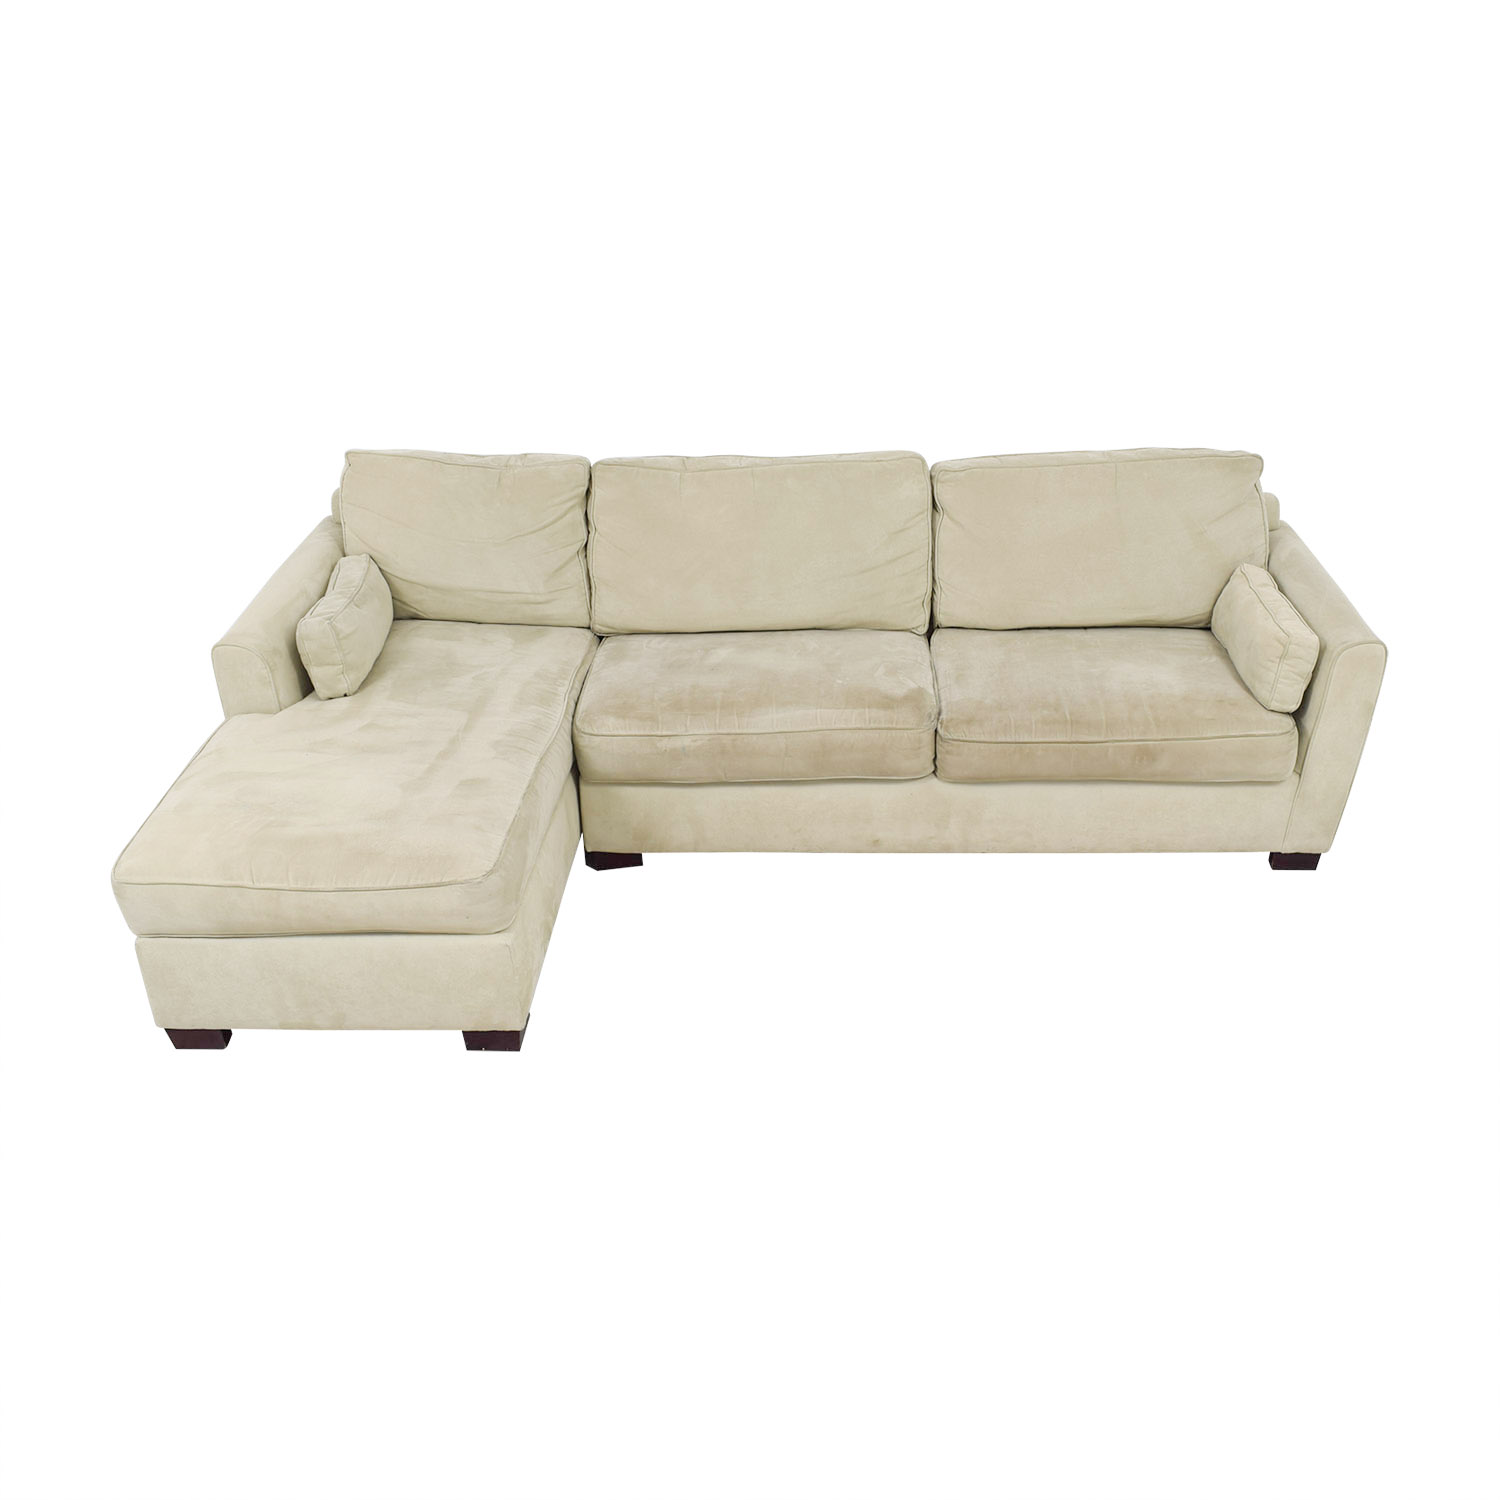 Bloomingdale's Bloomingdale's Beige Chaise Sectional